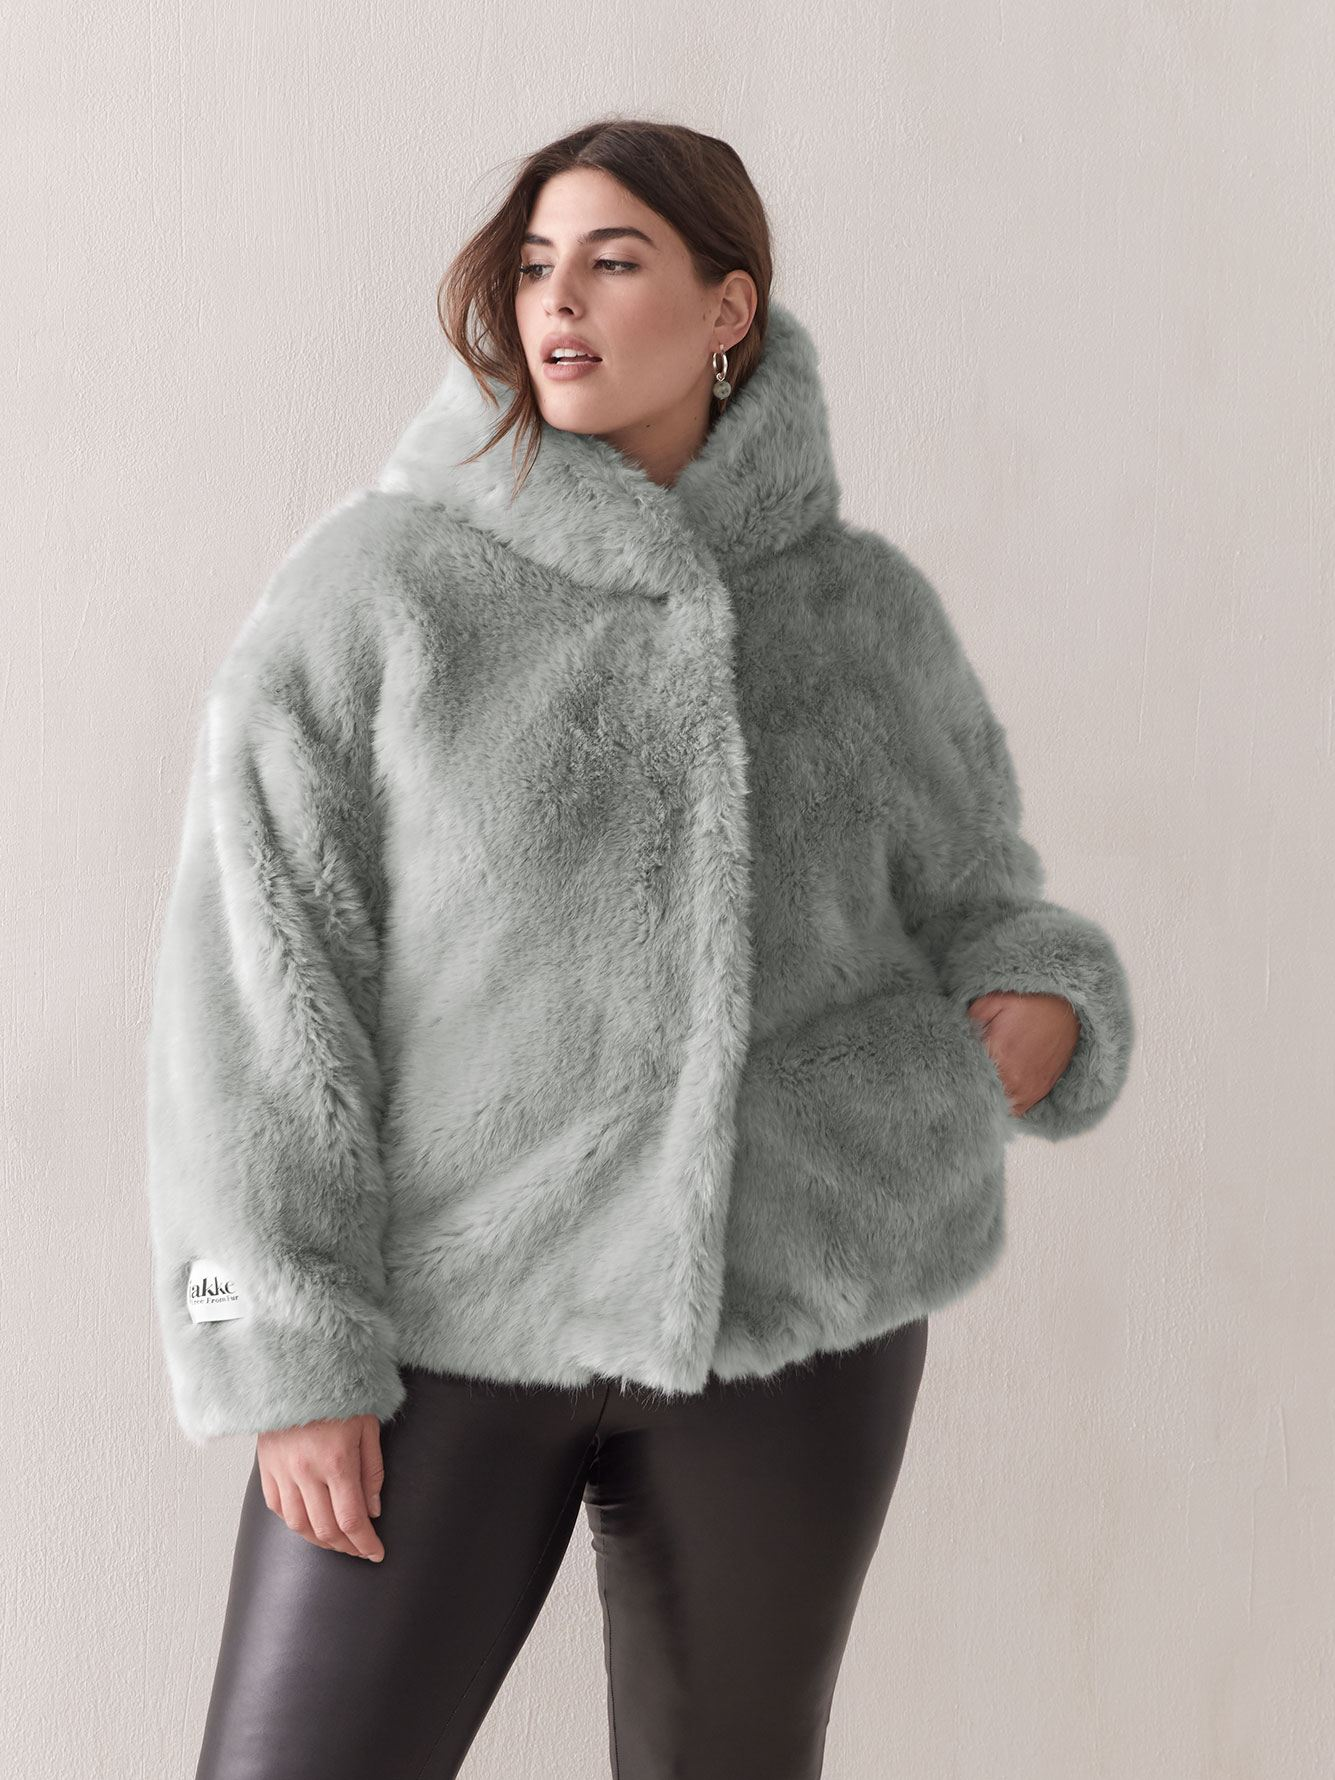 Daisy Oversized Faux Fur Jacket - jakke